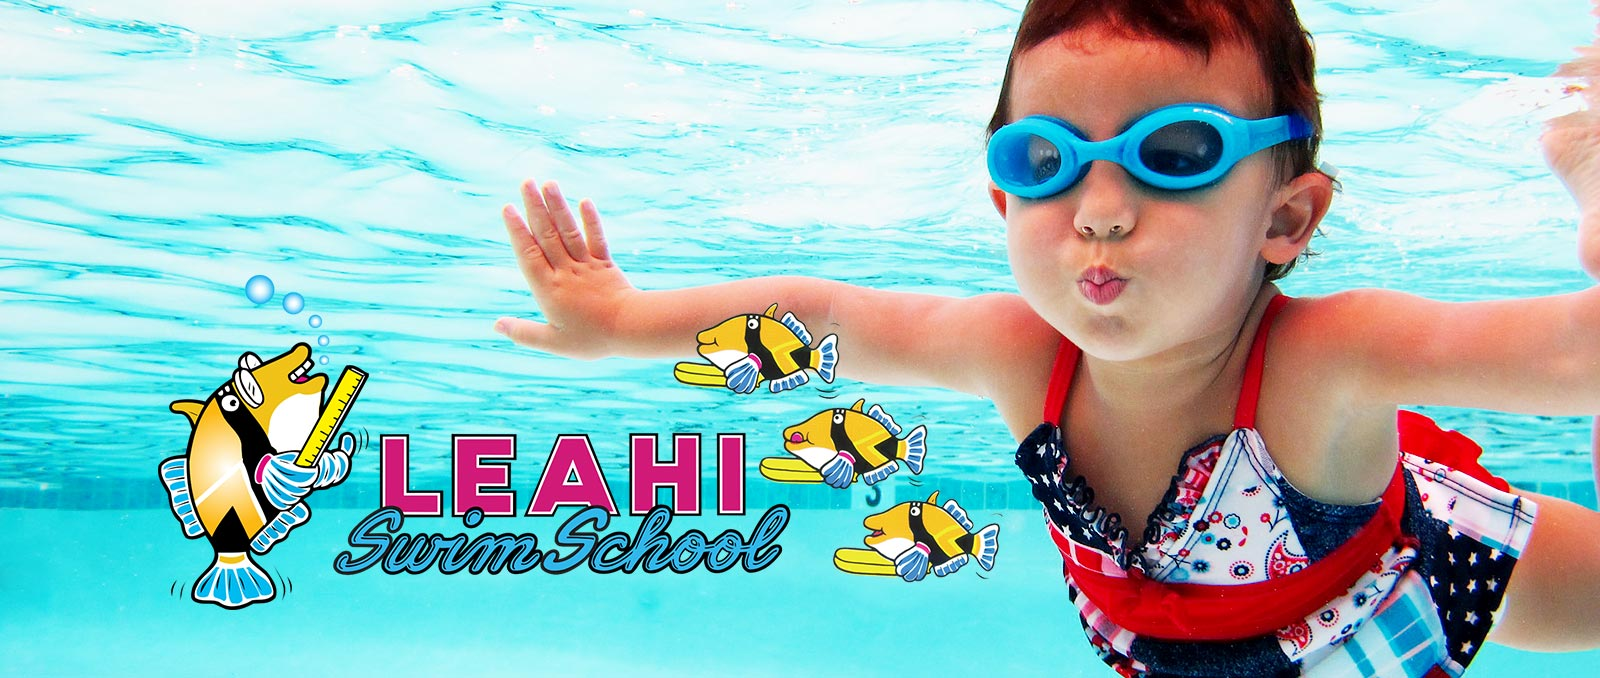 Leahi Swim School